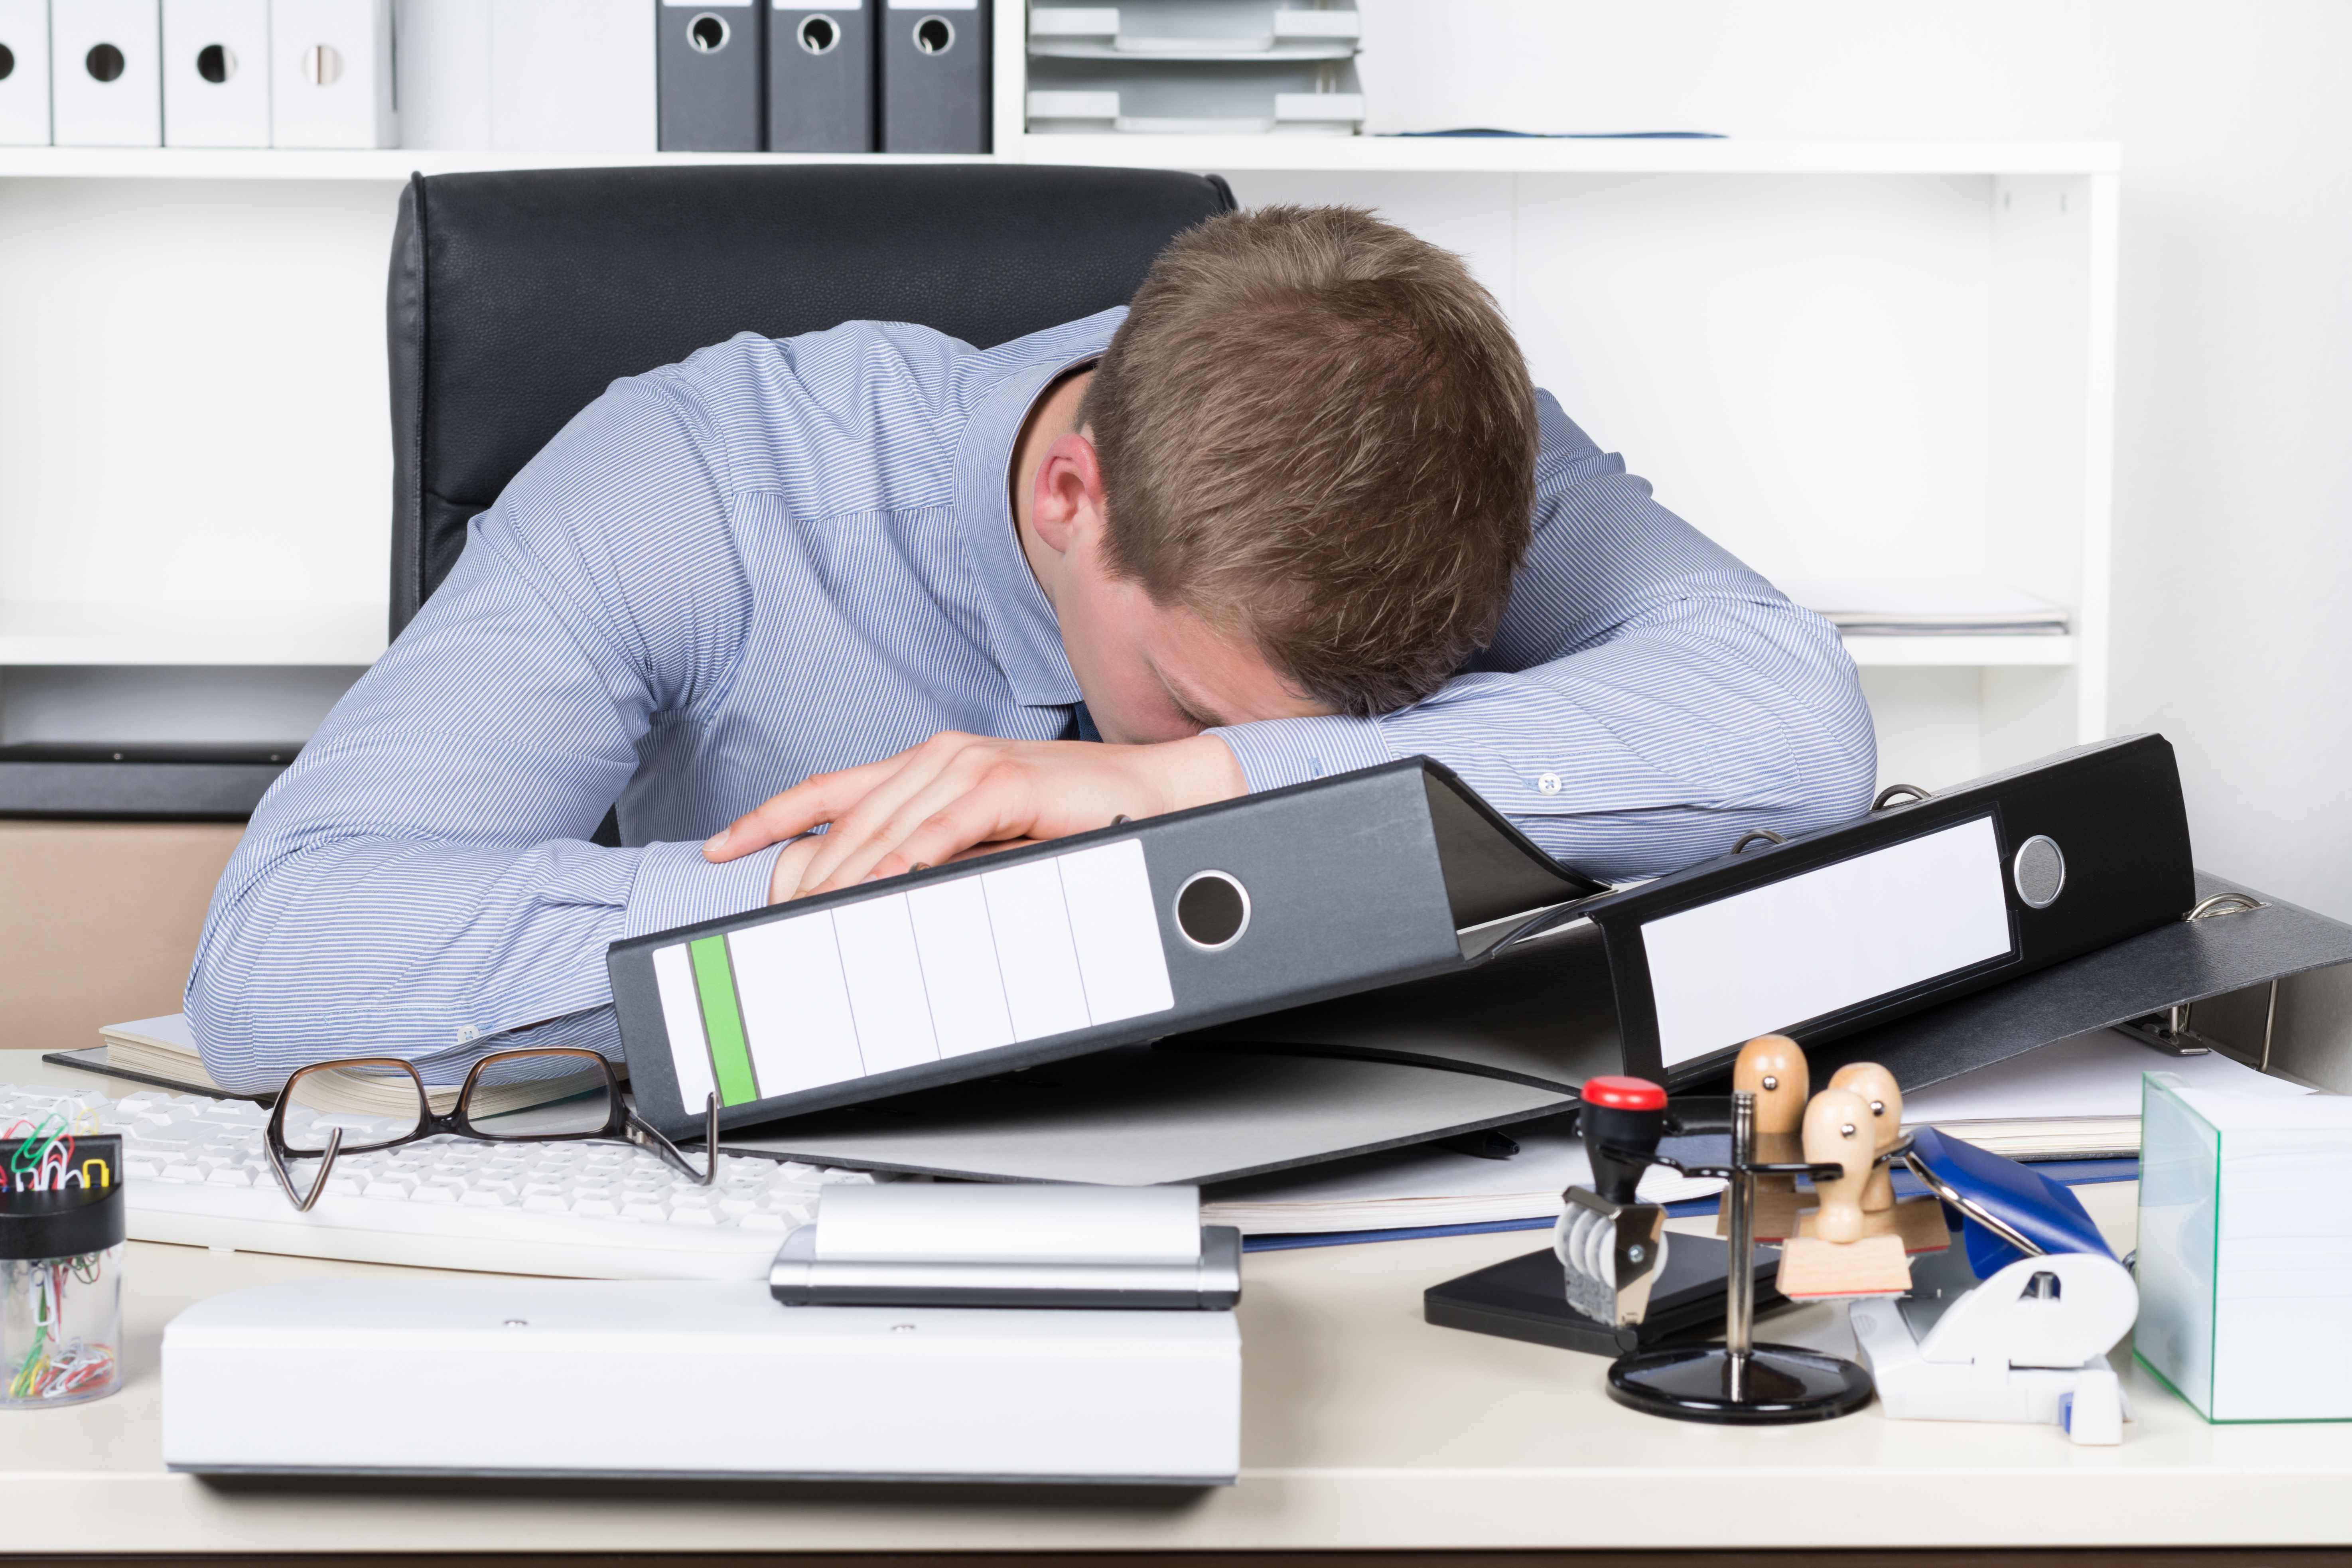 a businessman tired and resting on his desk with a pile of work (